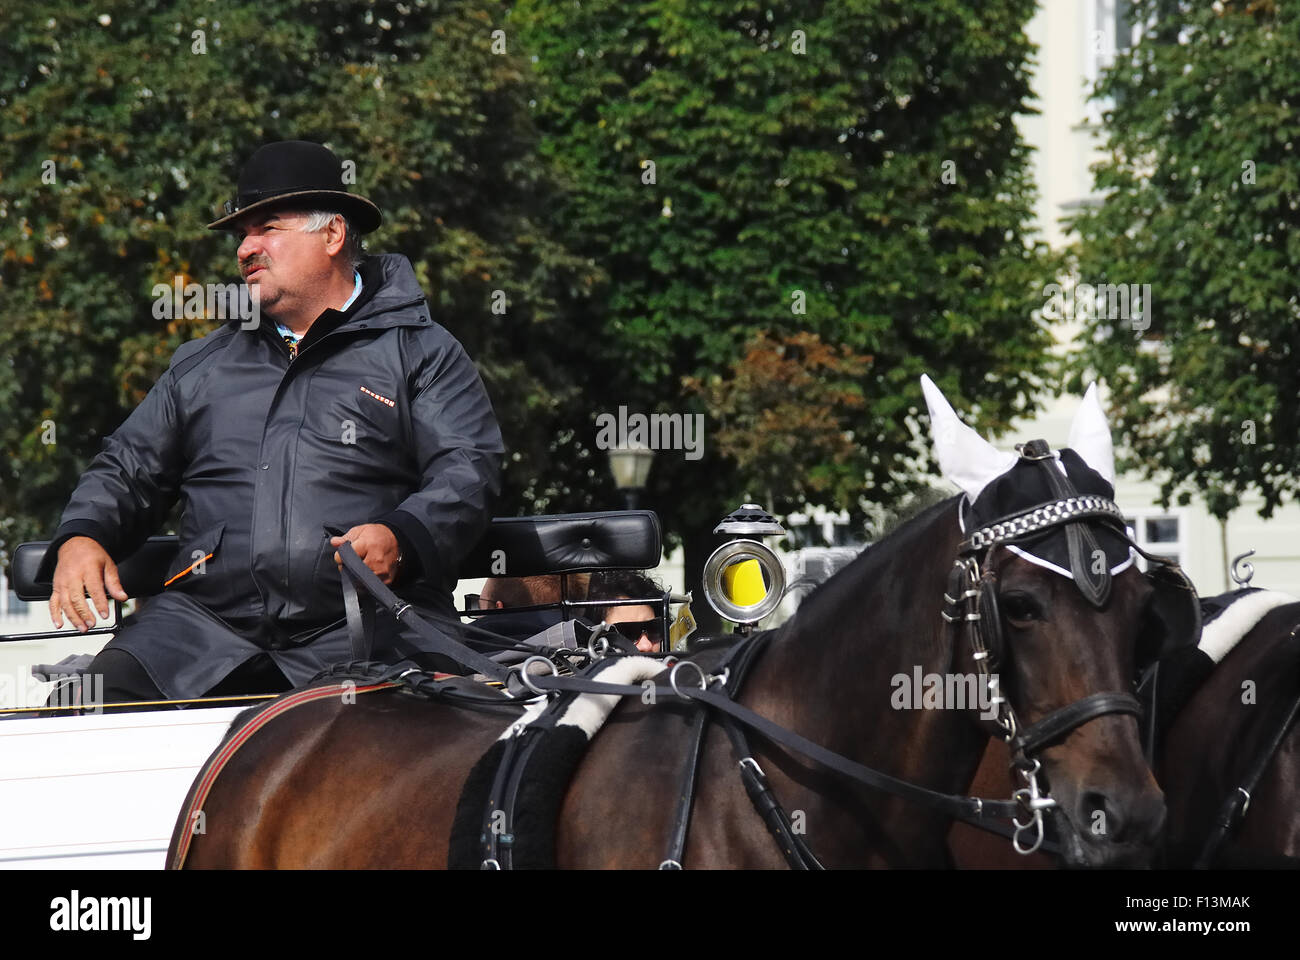 Vienna, a fiacre. The fiacre is the tipical Viennese cab. A coachman. - Stock Image